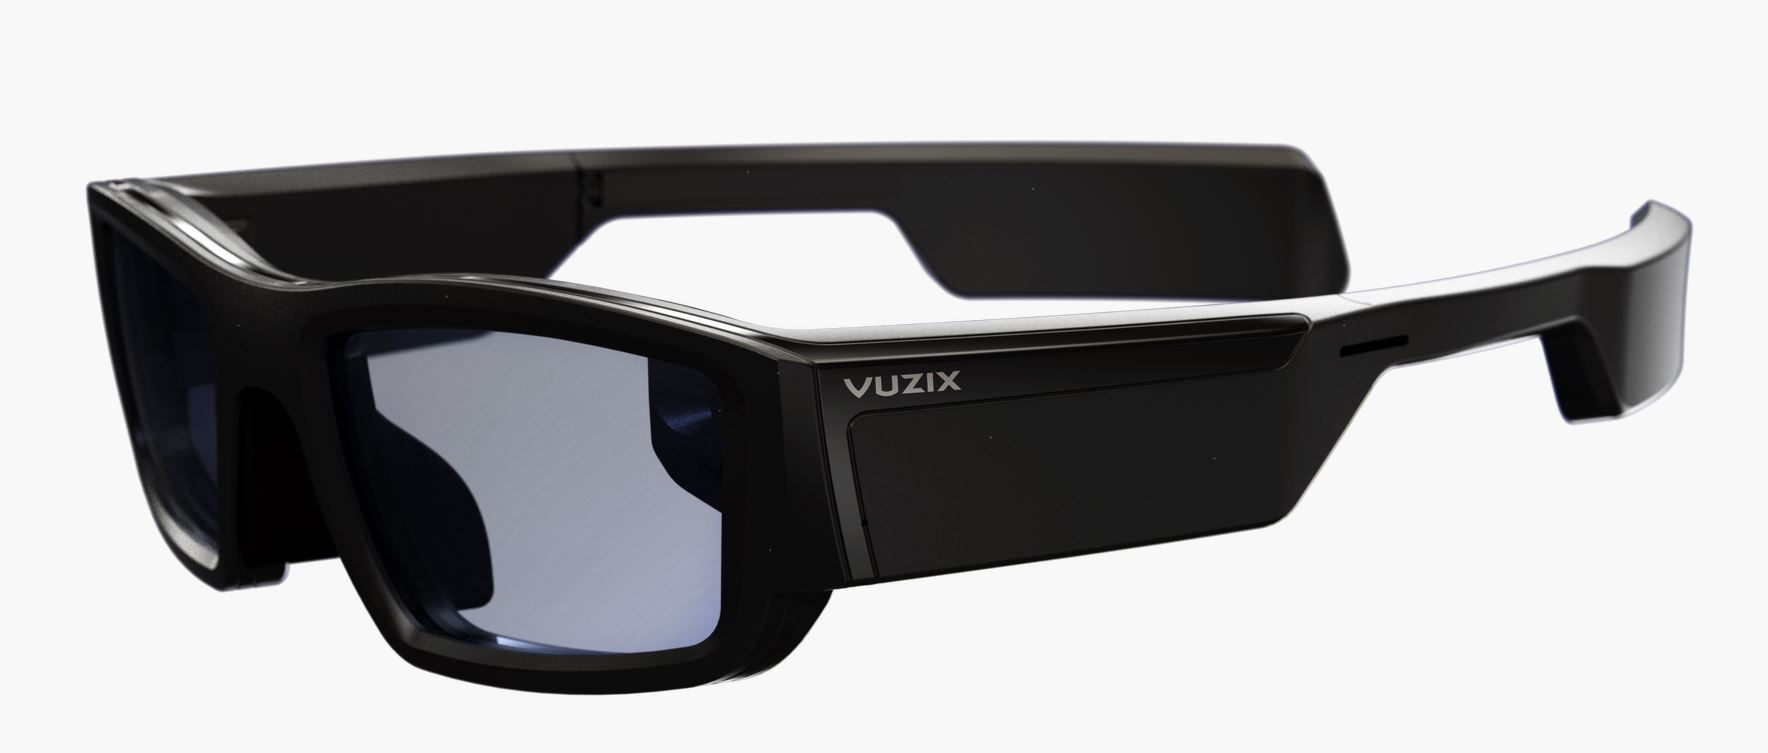 The Vuzix Blade smart glasses with Amazon Alexa